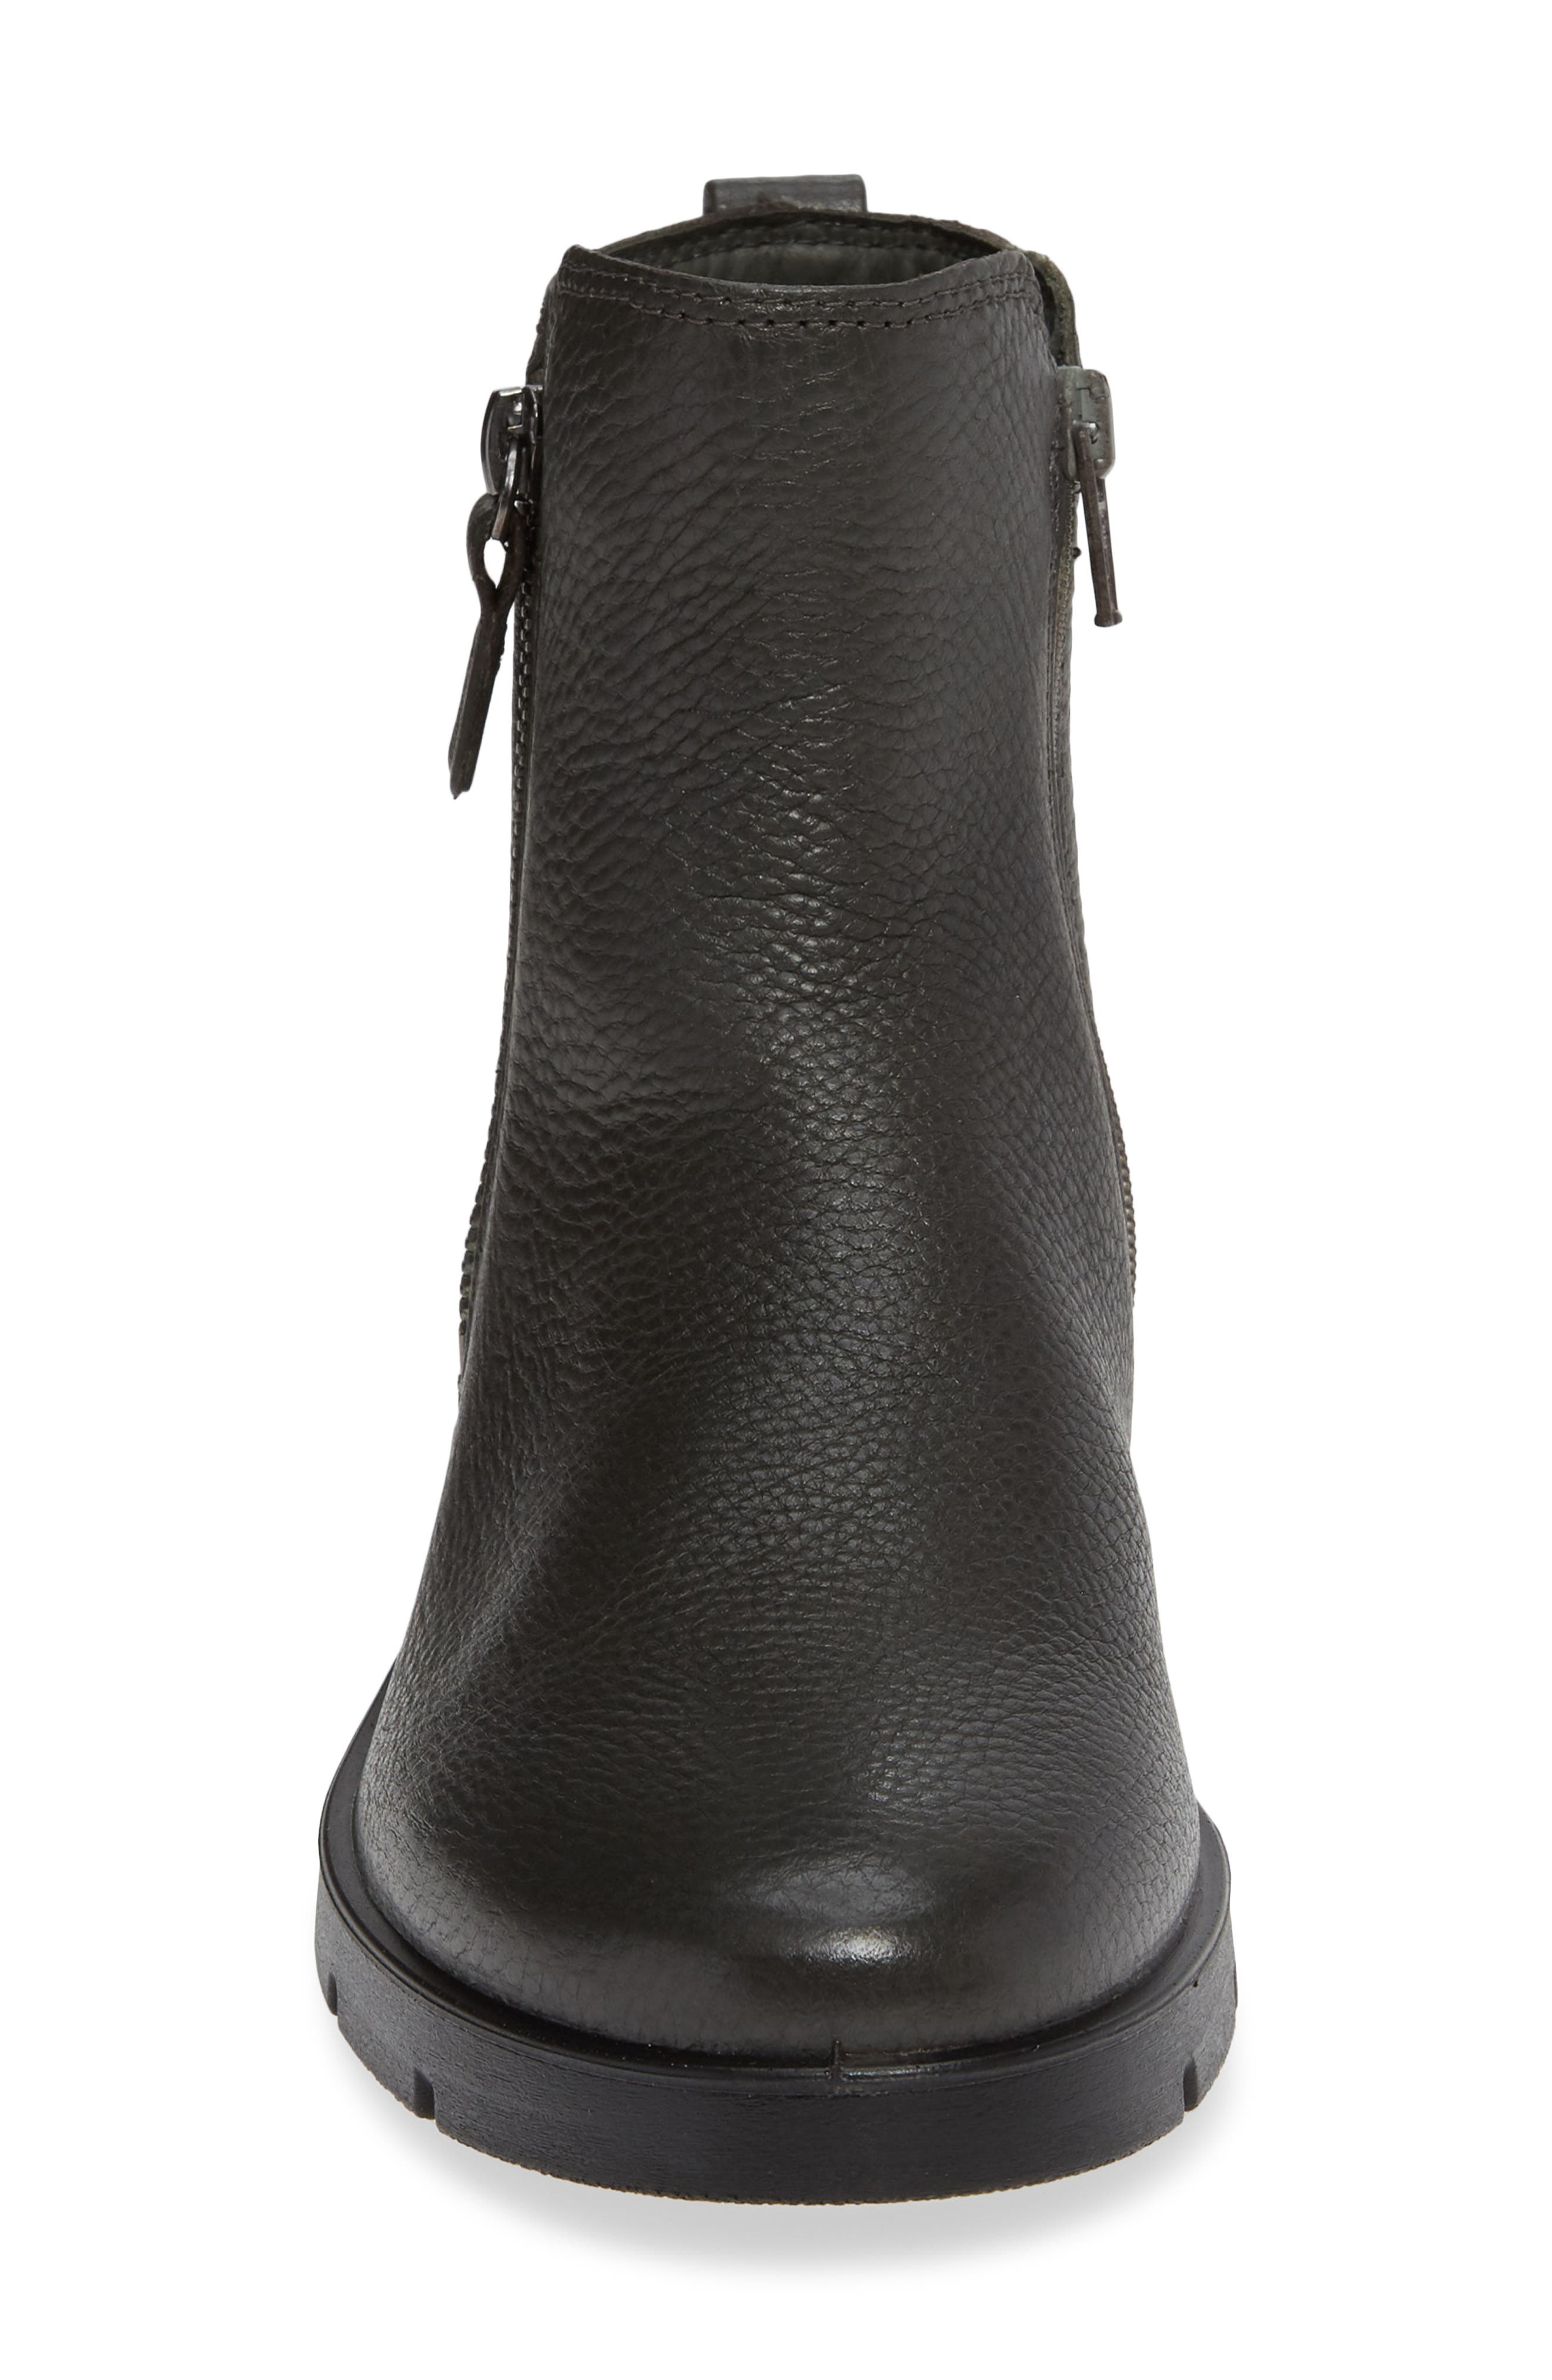 'Bella' Zip Bootie,                             Alternate thumbnail 4, color,                             MOON LEATHER